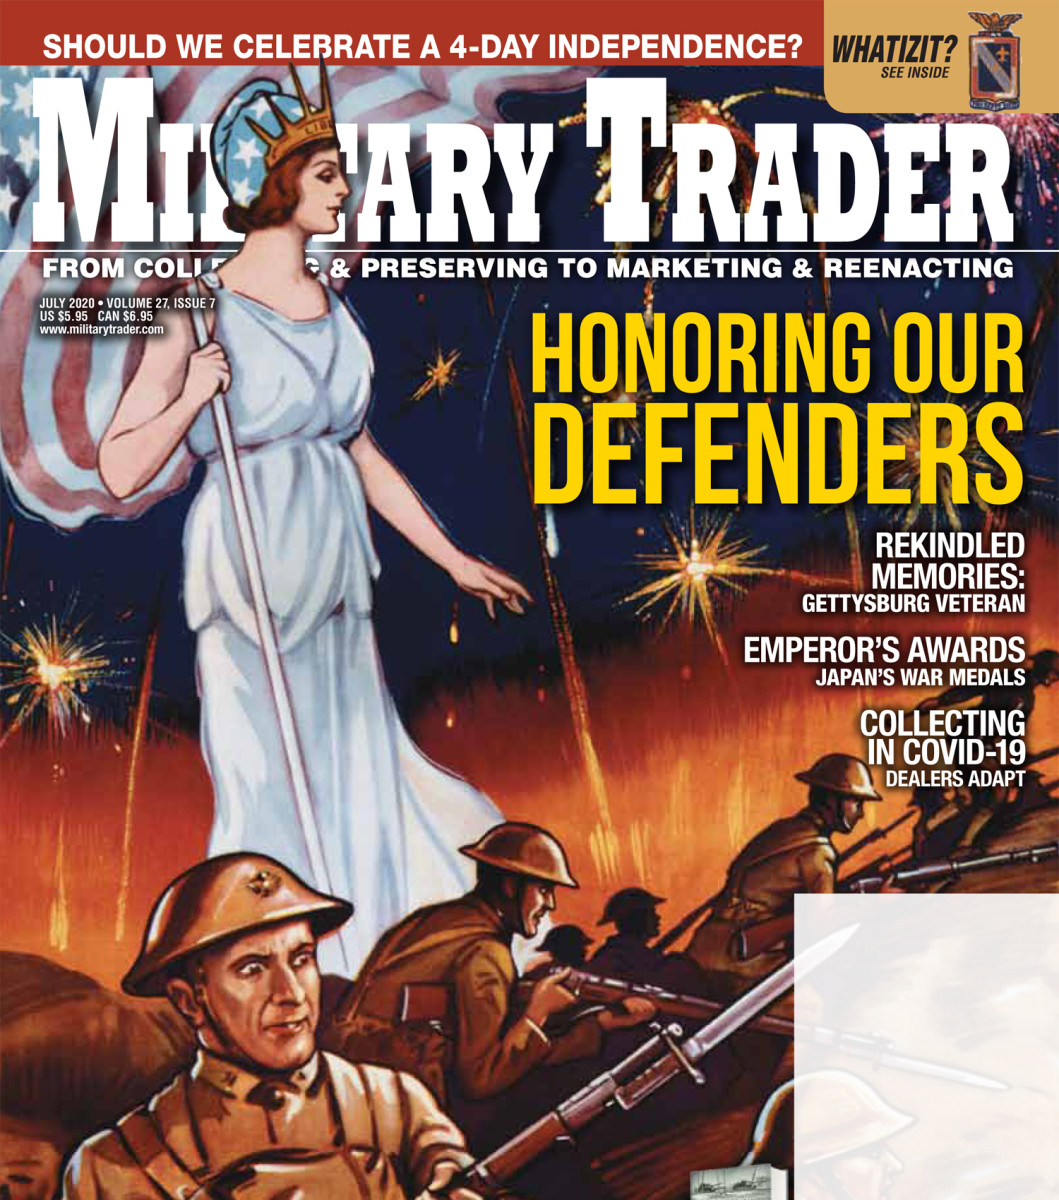 Subscribe to Military Trader: https://mlt.pcdfusion.com/pcd/Order?iKey=C**F41